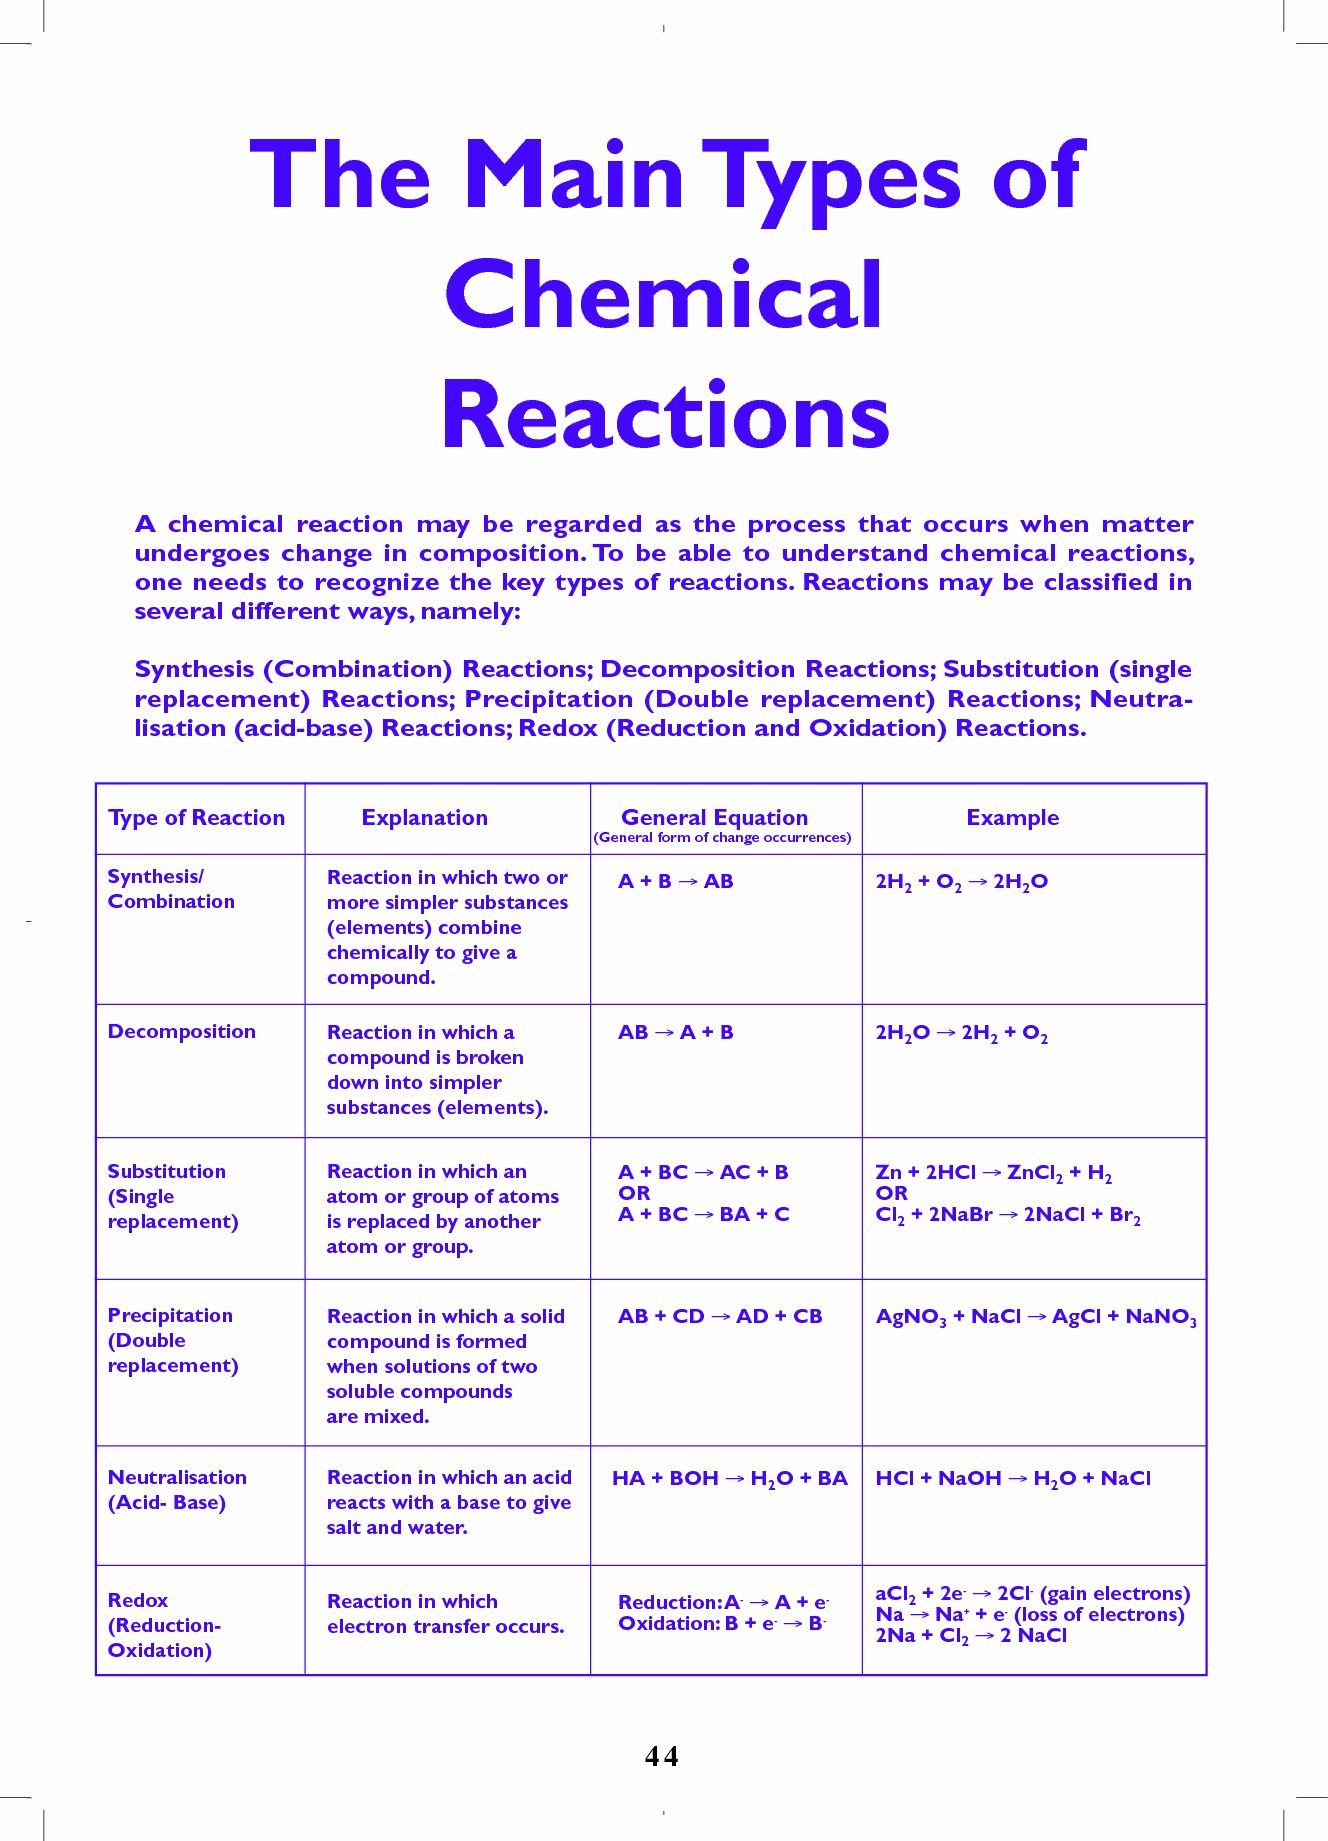 Describing Chemical Reactions Worksheet